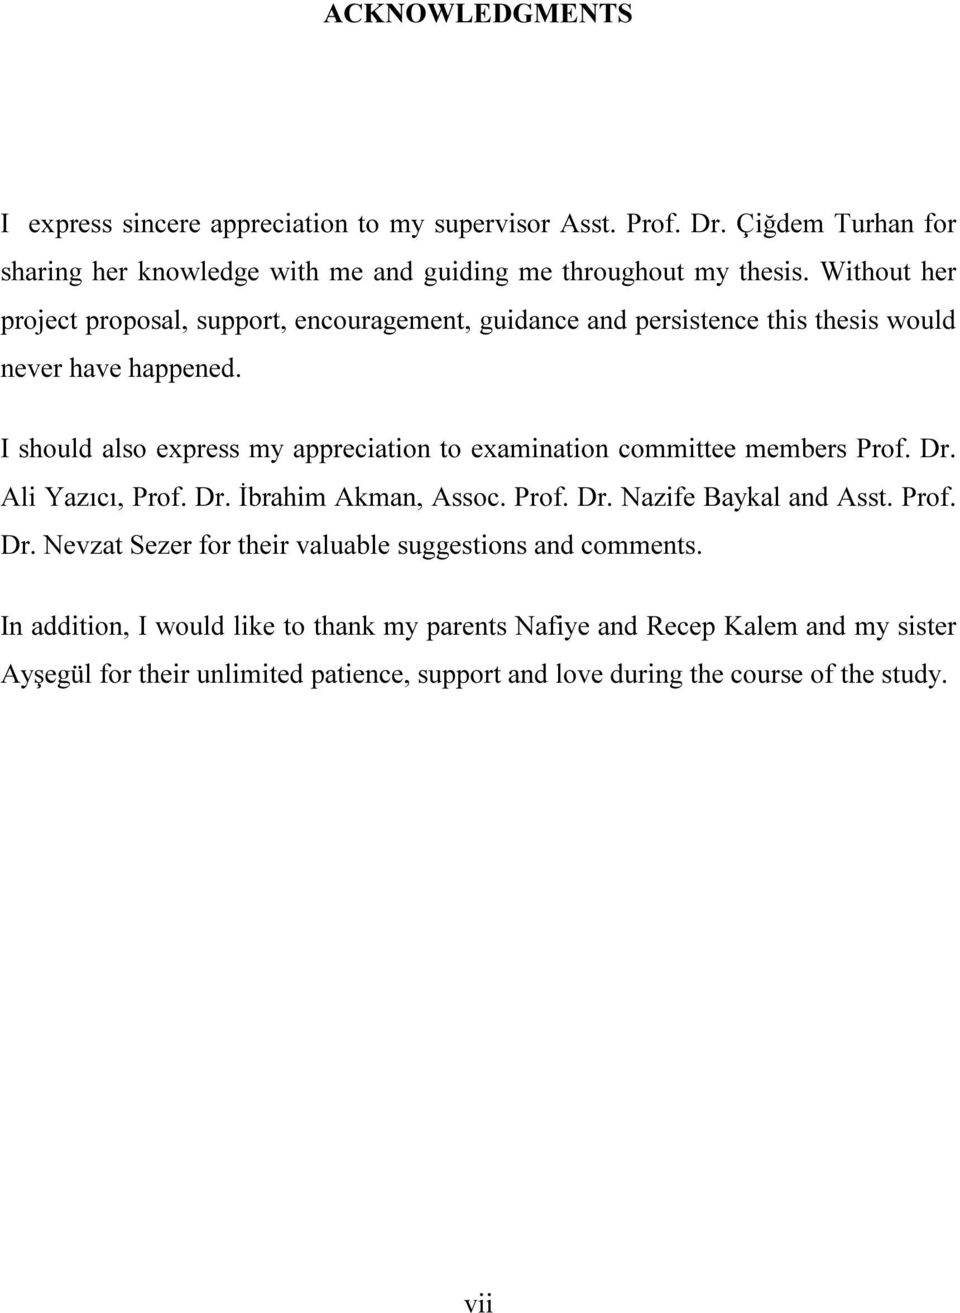 I should also express my appreciation to examination committee members Prof. Dr. Ali Yazıcı, Prof. Dr. İbrahim Akman, Assoc. Prof. Dr. Nazife Baykal and Asst. Prof. Dr. Nevzat Sezer for their valuable suggestions and comments.